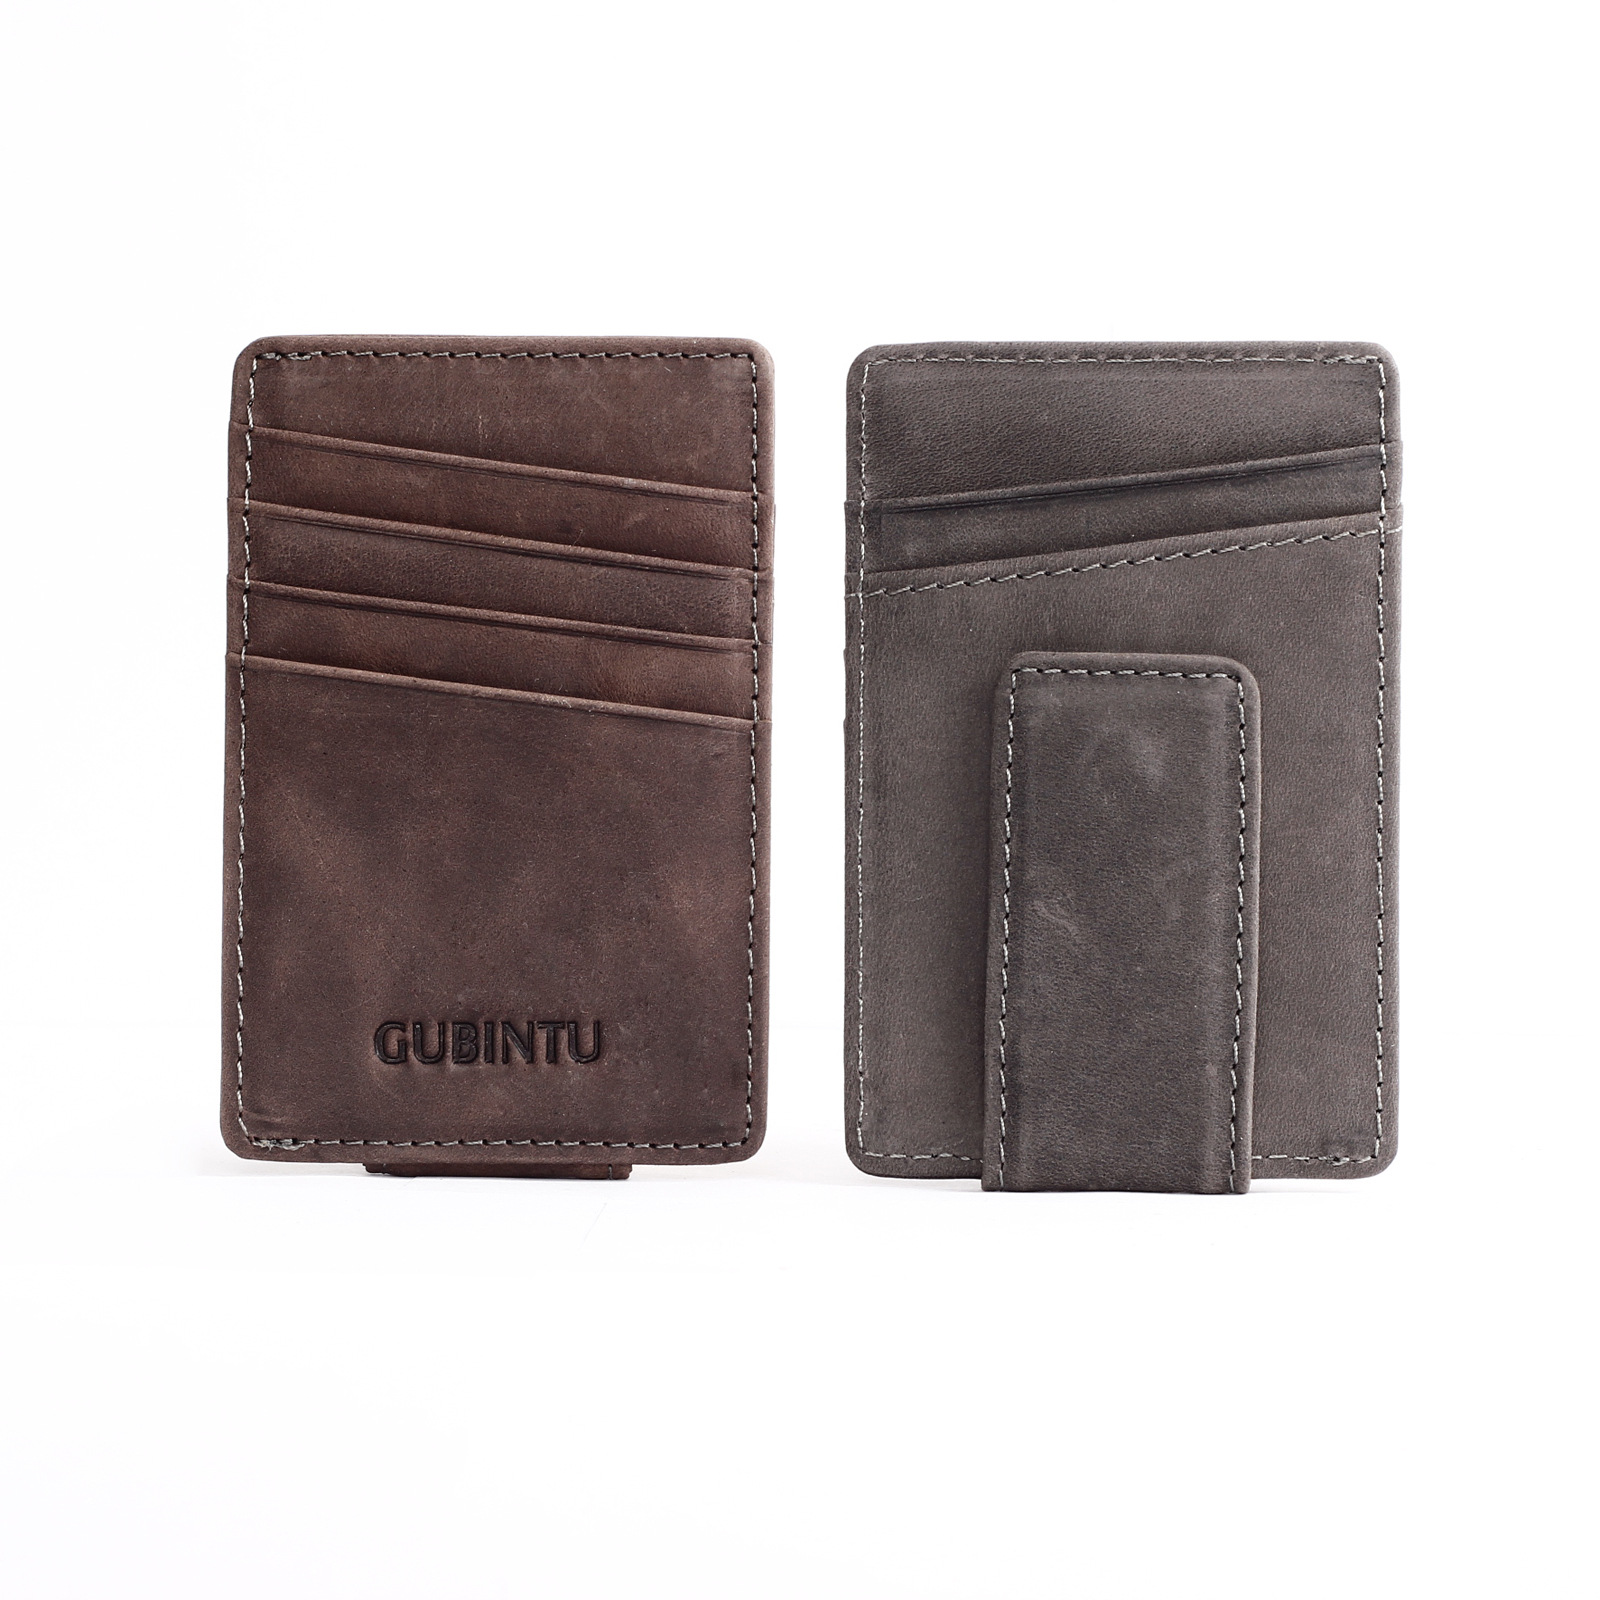 2017 Men Business Genuine leather Wallet Credit Card ID Holder with Magnet Money Clip Cowhide